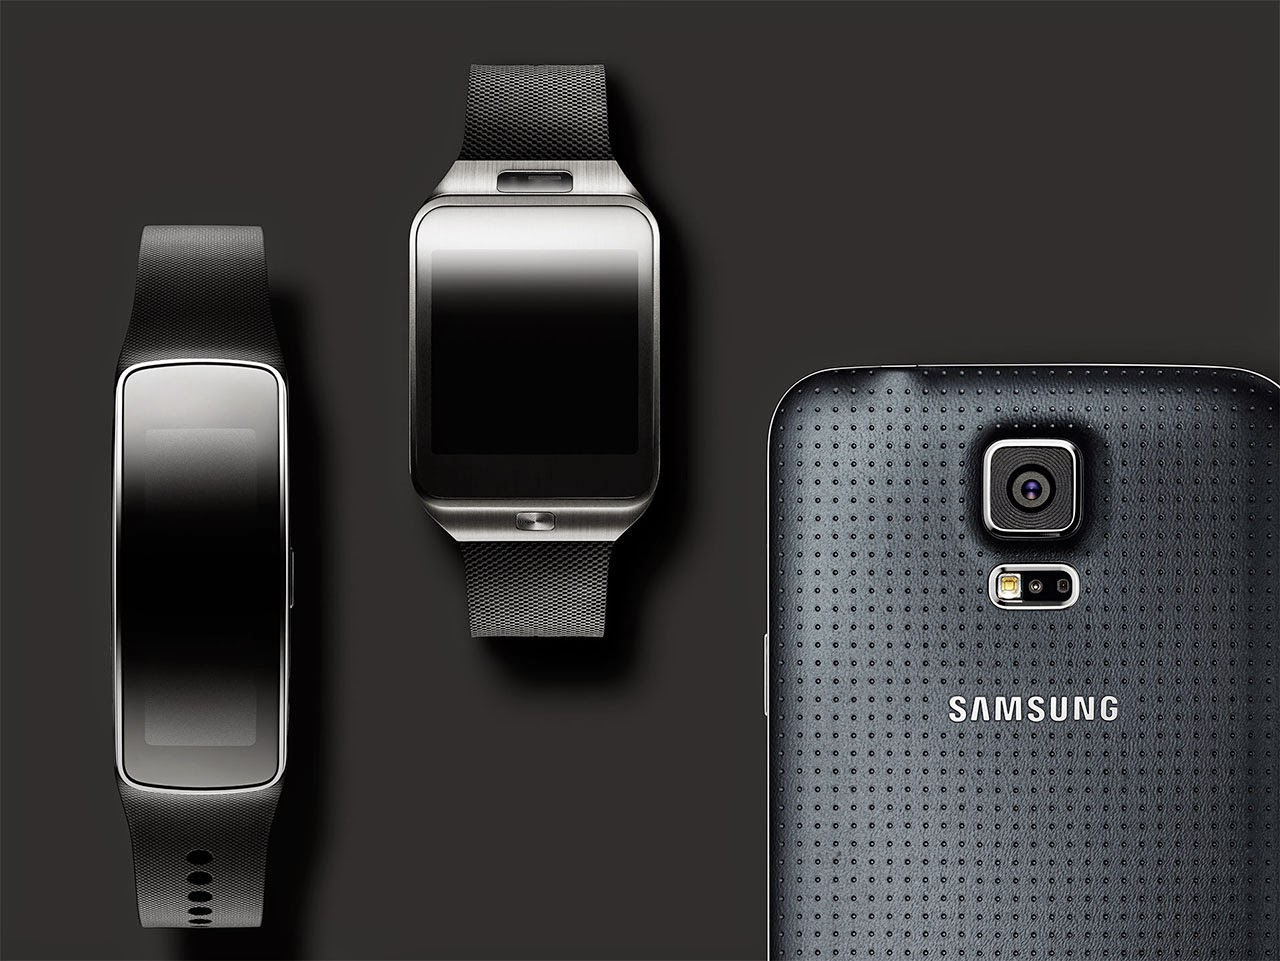 Samsung Galaxy S5 Smartphone & watches